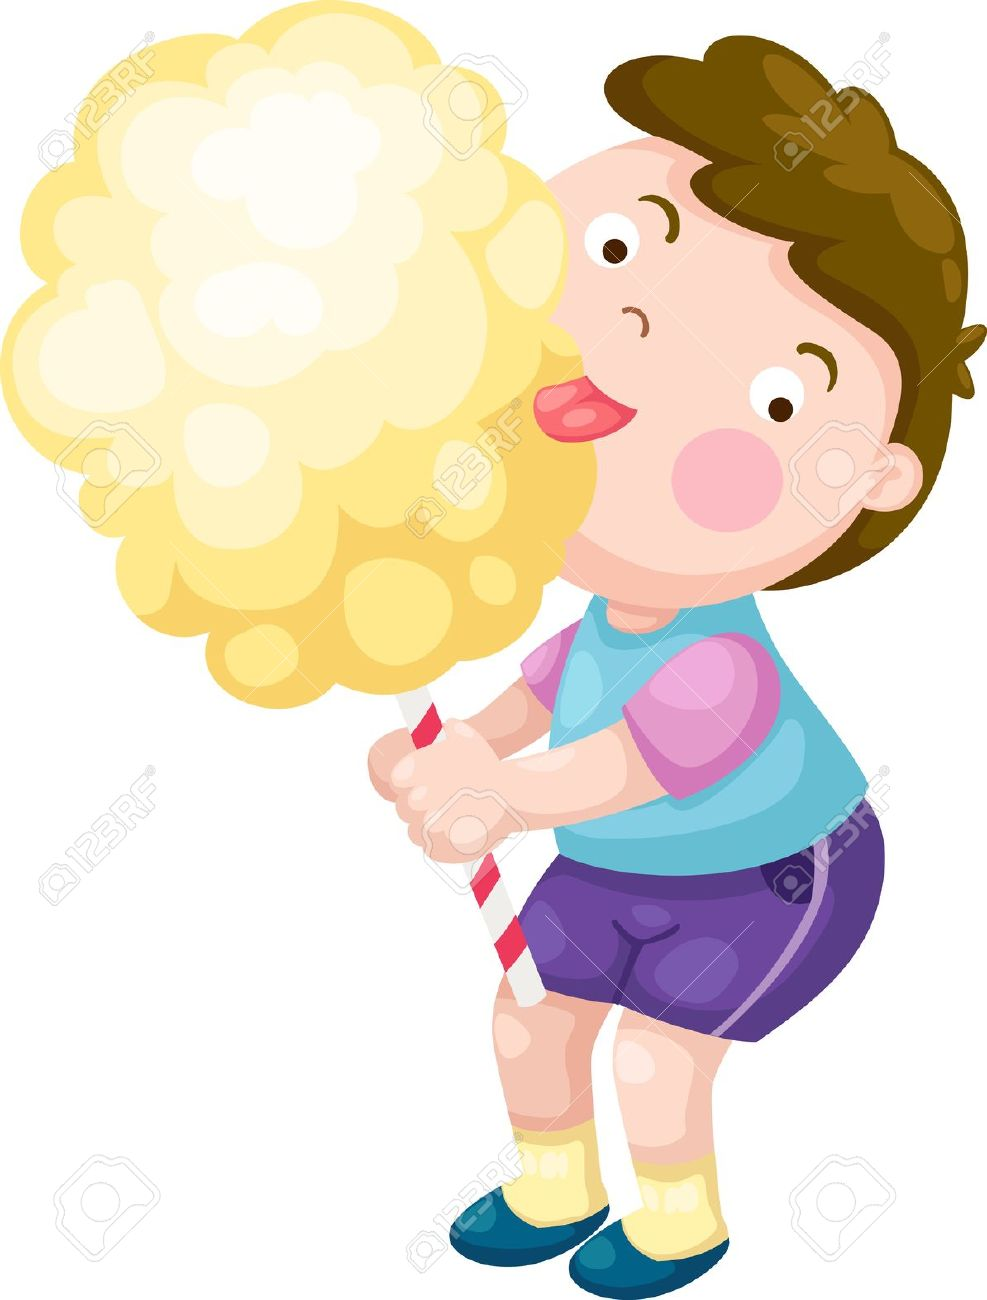 Boy With Candy Floss Vector Illustration On A White Background.